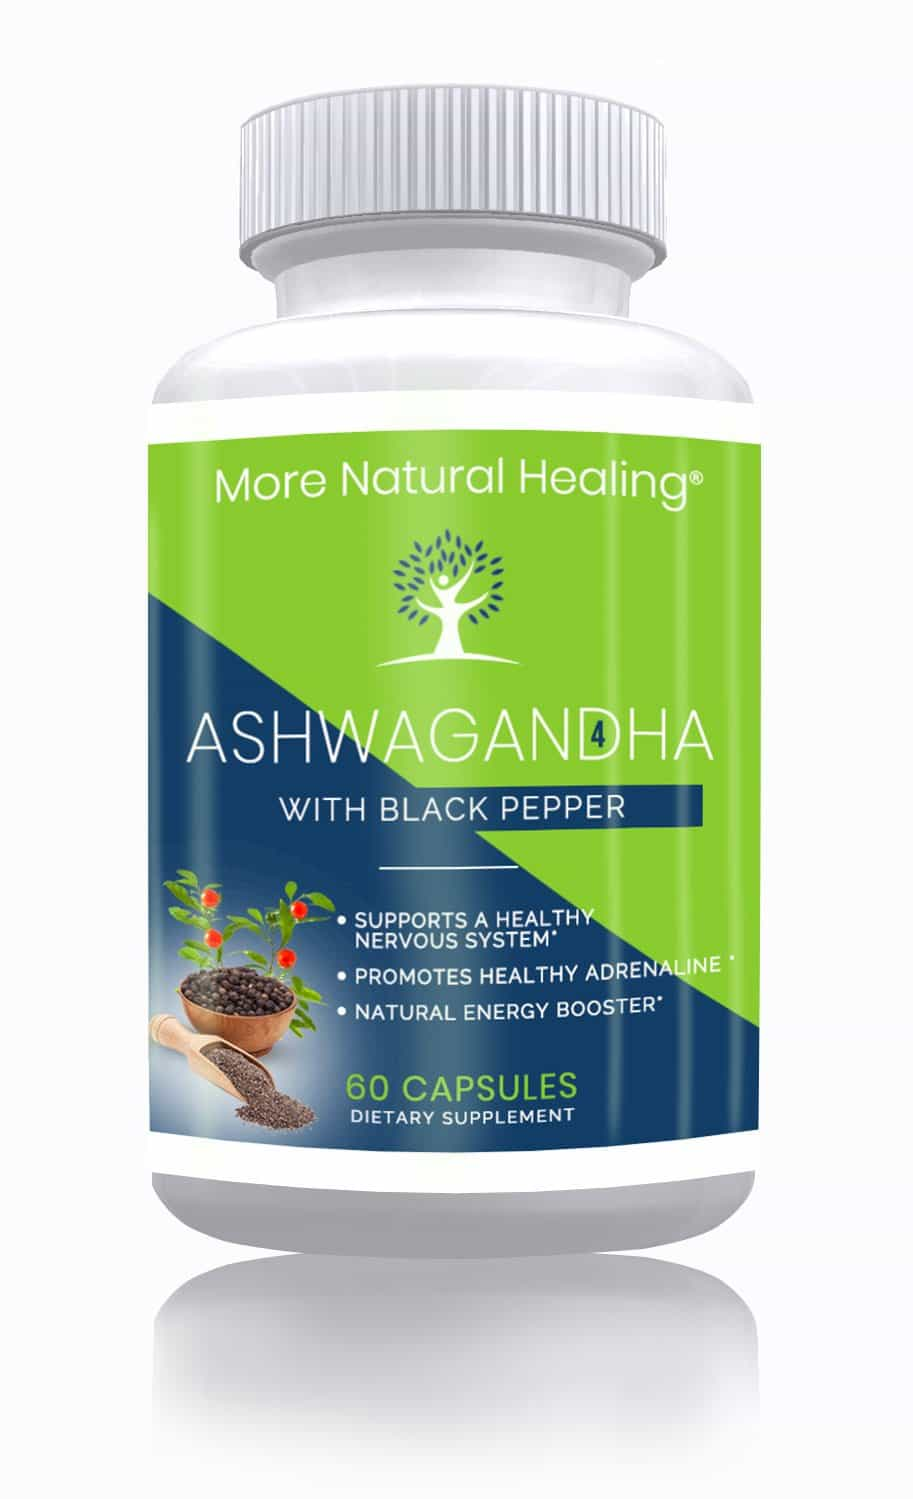 Ashwagandha - More Natural Healing